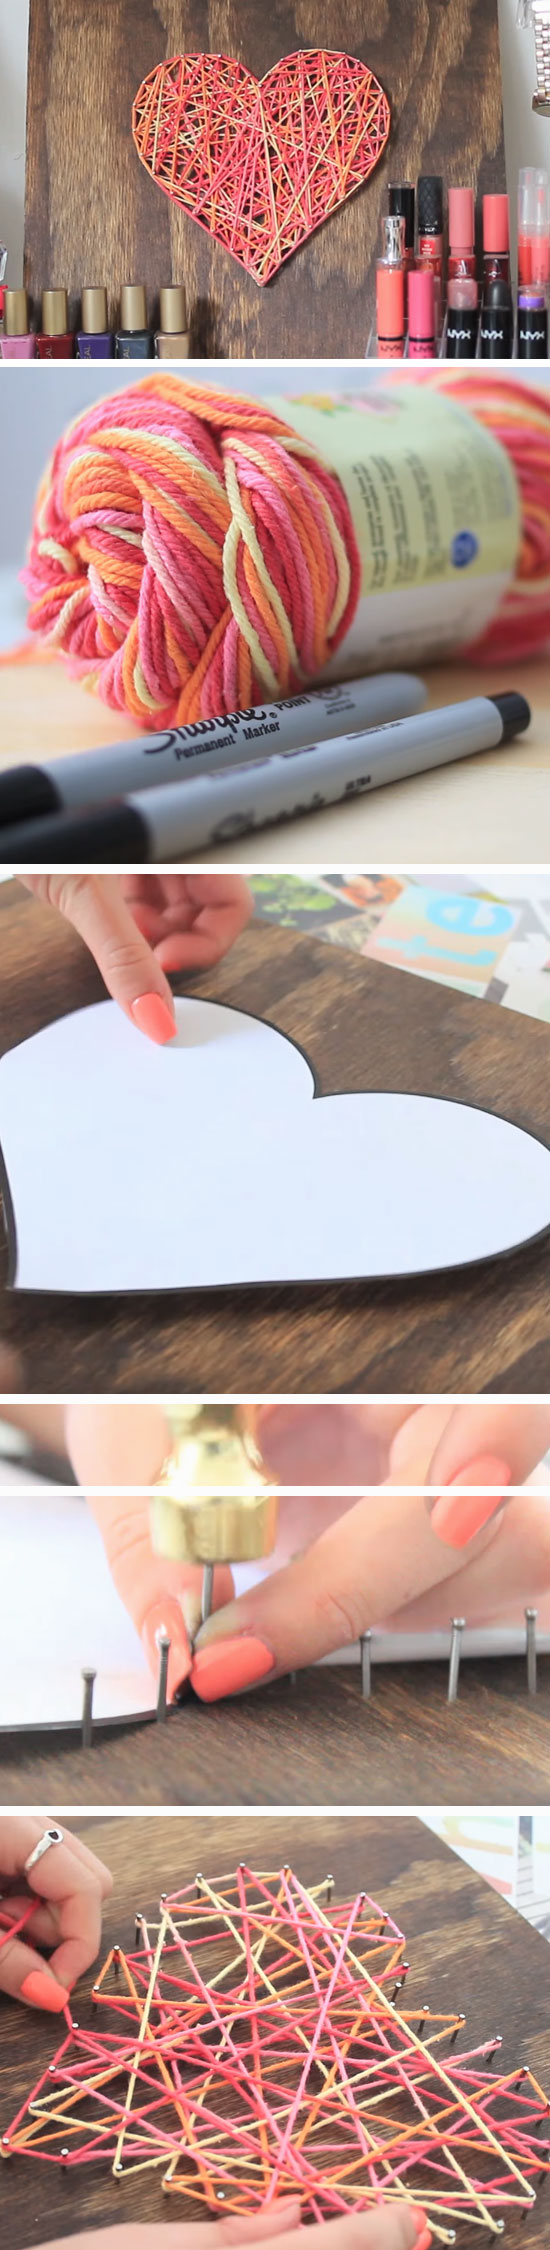 25 romantic diy valentines day crafts for him heart string nail art solutioingenieria Choice Image